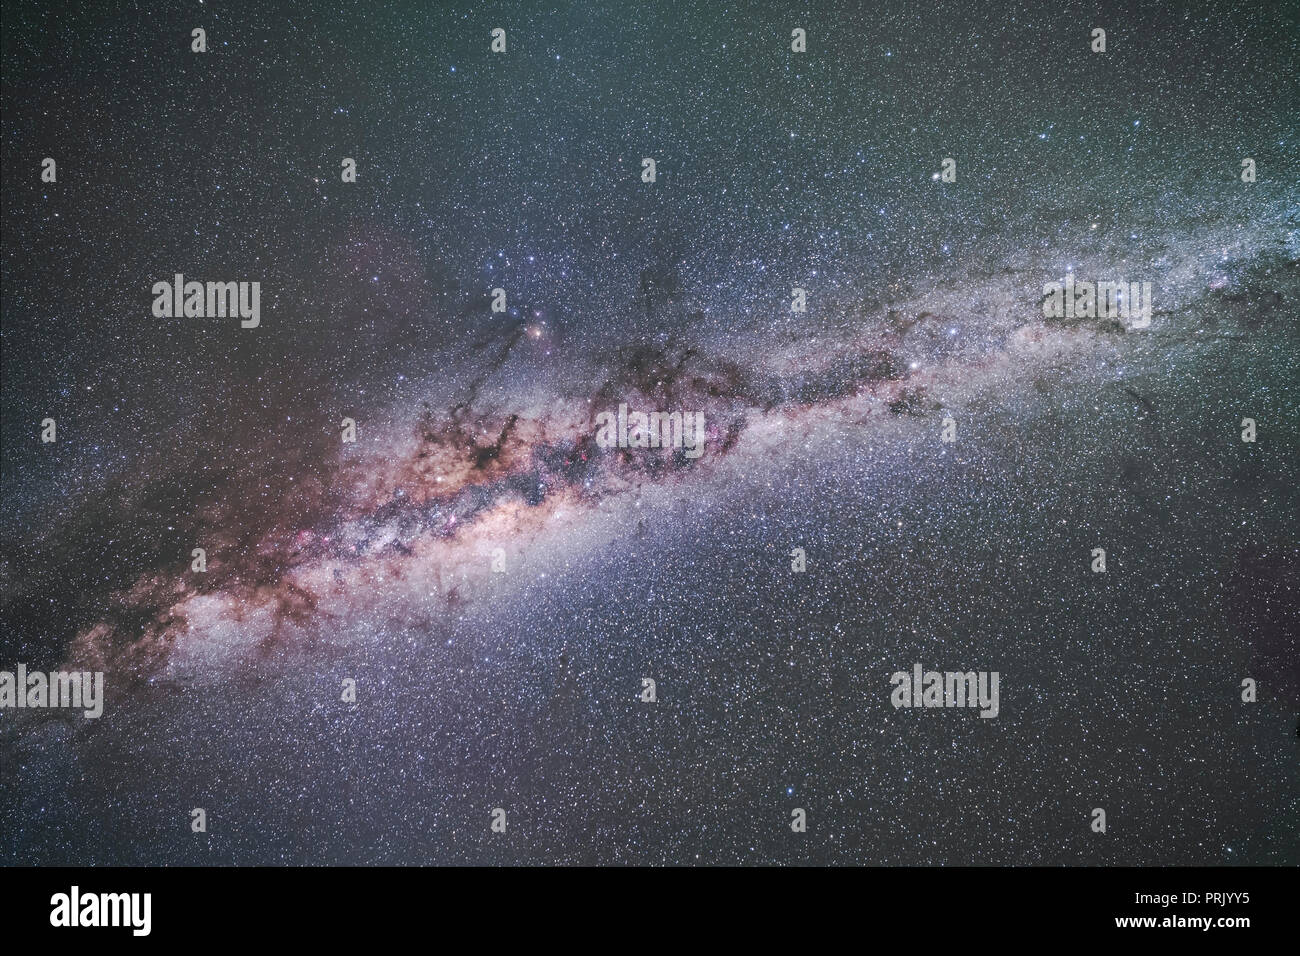 The formation of dark lanes called the Dark Emu in Australian aboriginal sky lore, seen here in its entirety with it overhead in the April pre-dawn sk - Stock Image